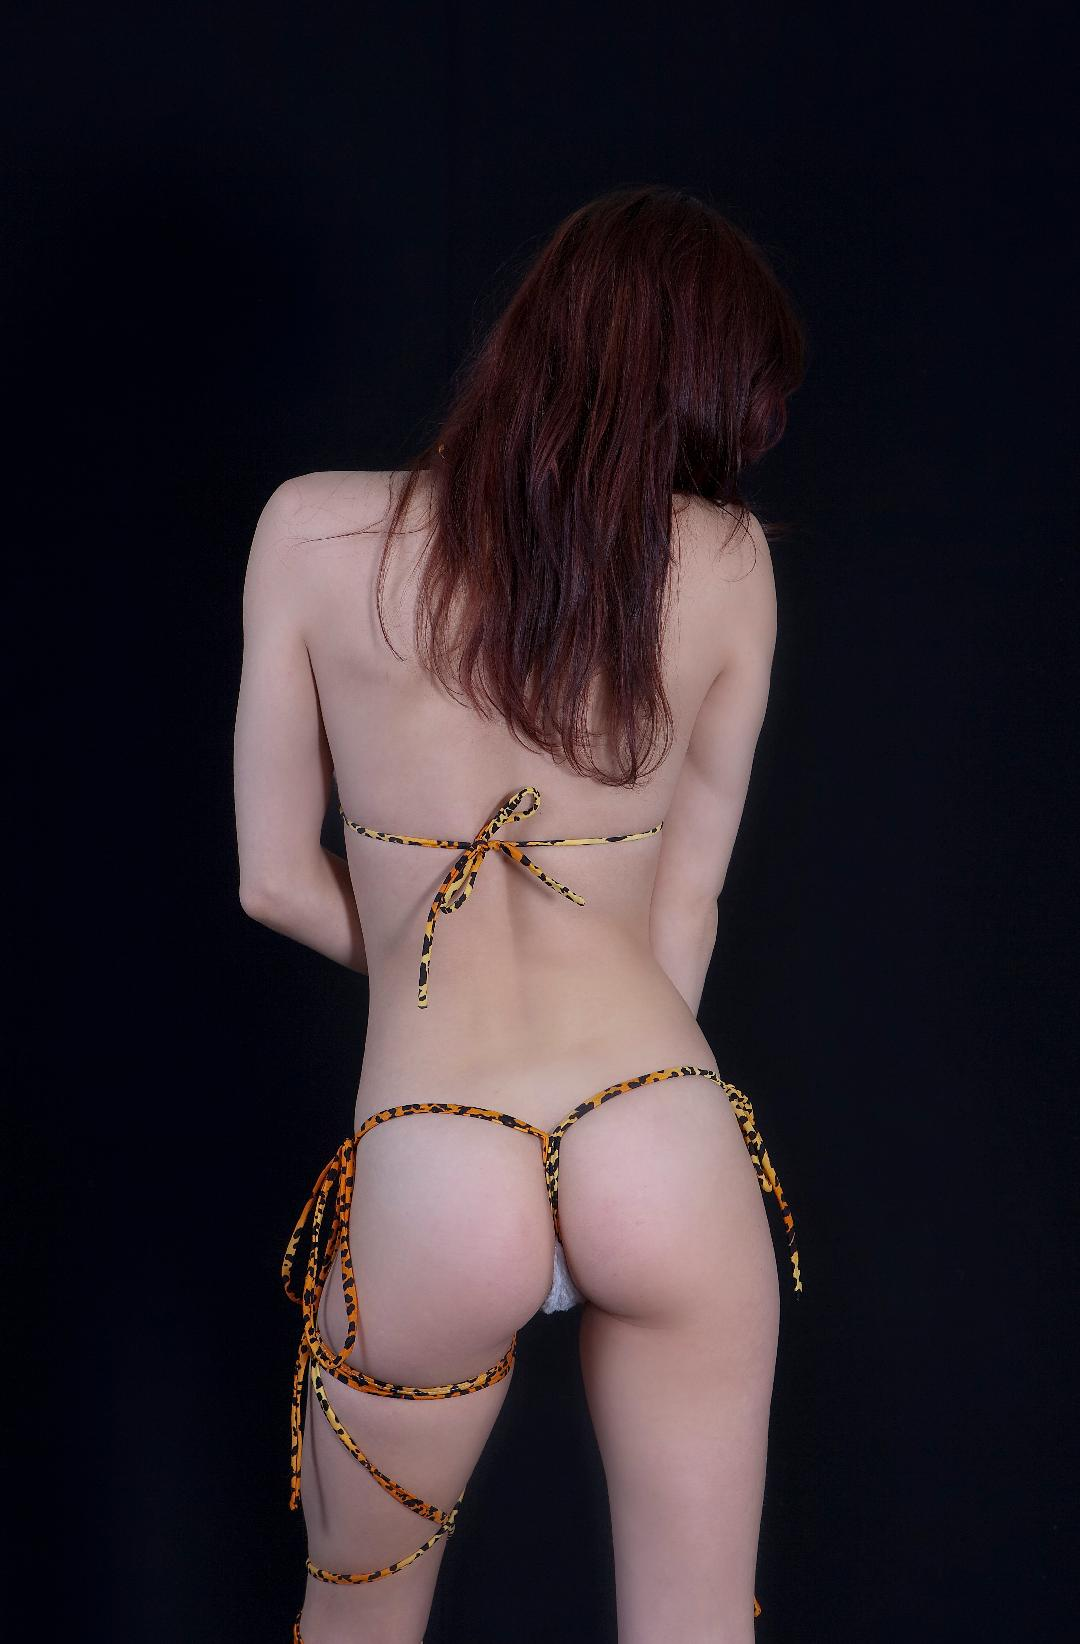 EROTIC, SENSUAL MASSAGE AND MORE!